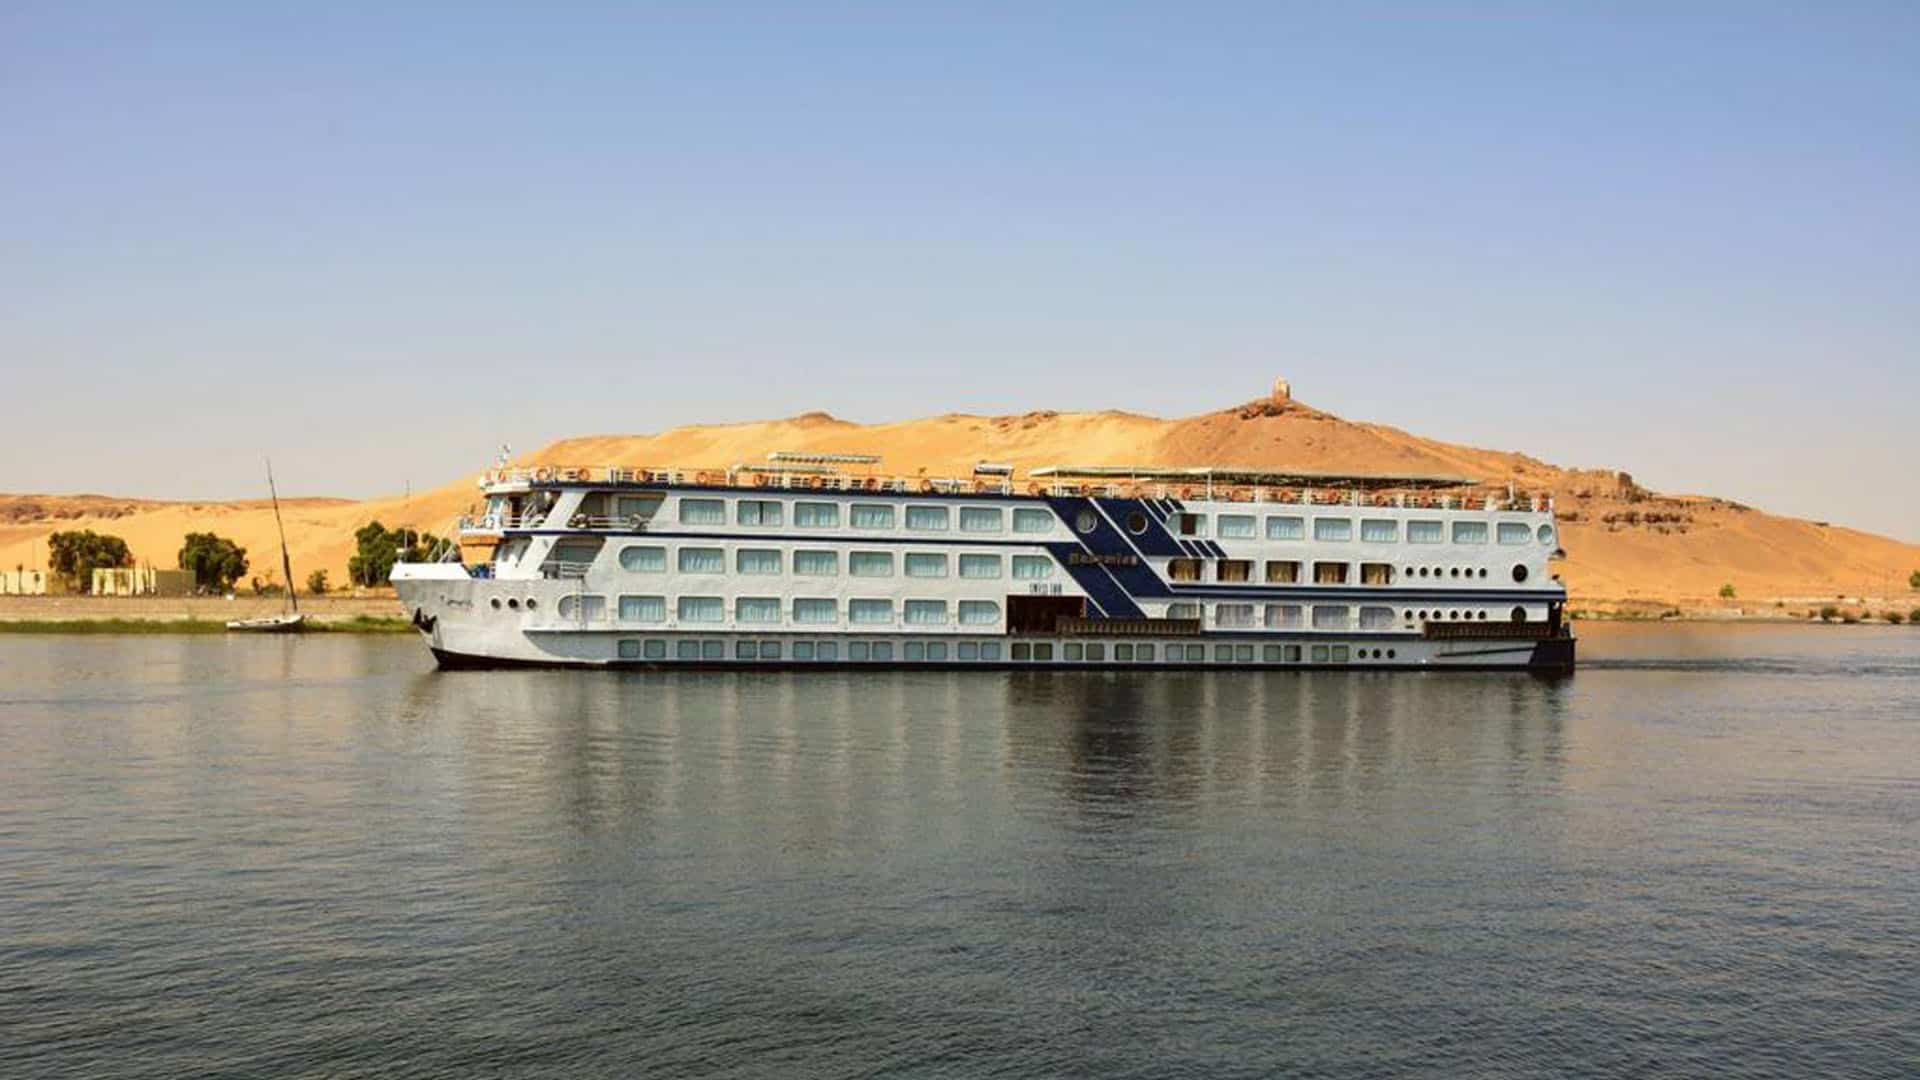 Nile cruise holidays from Luxor